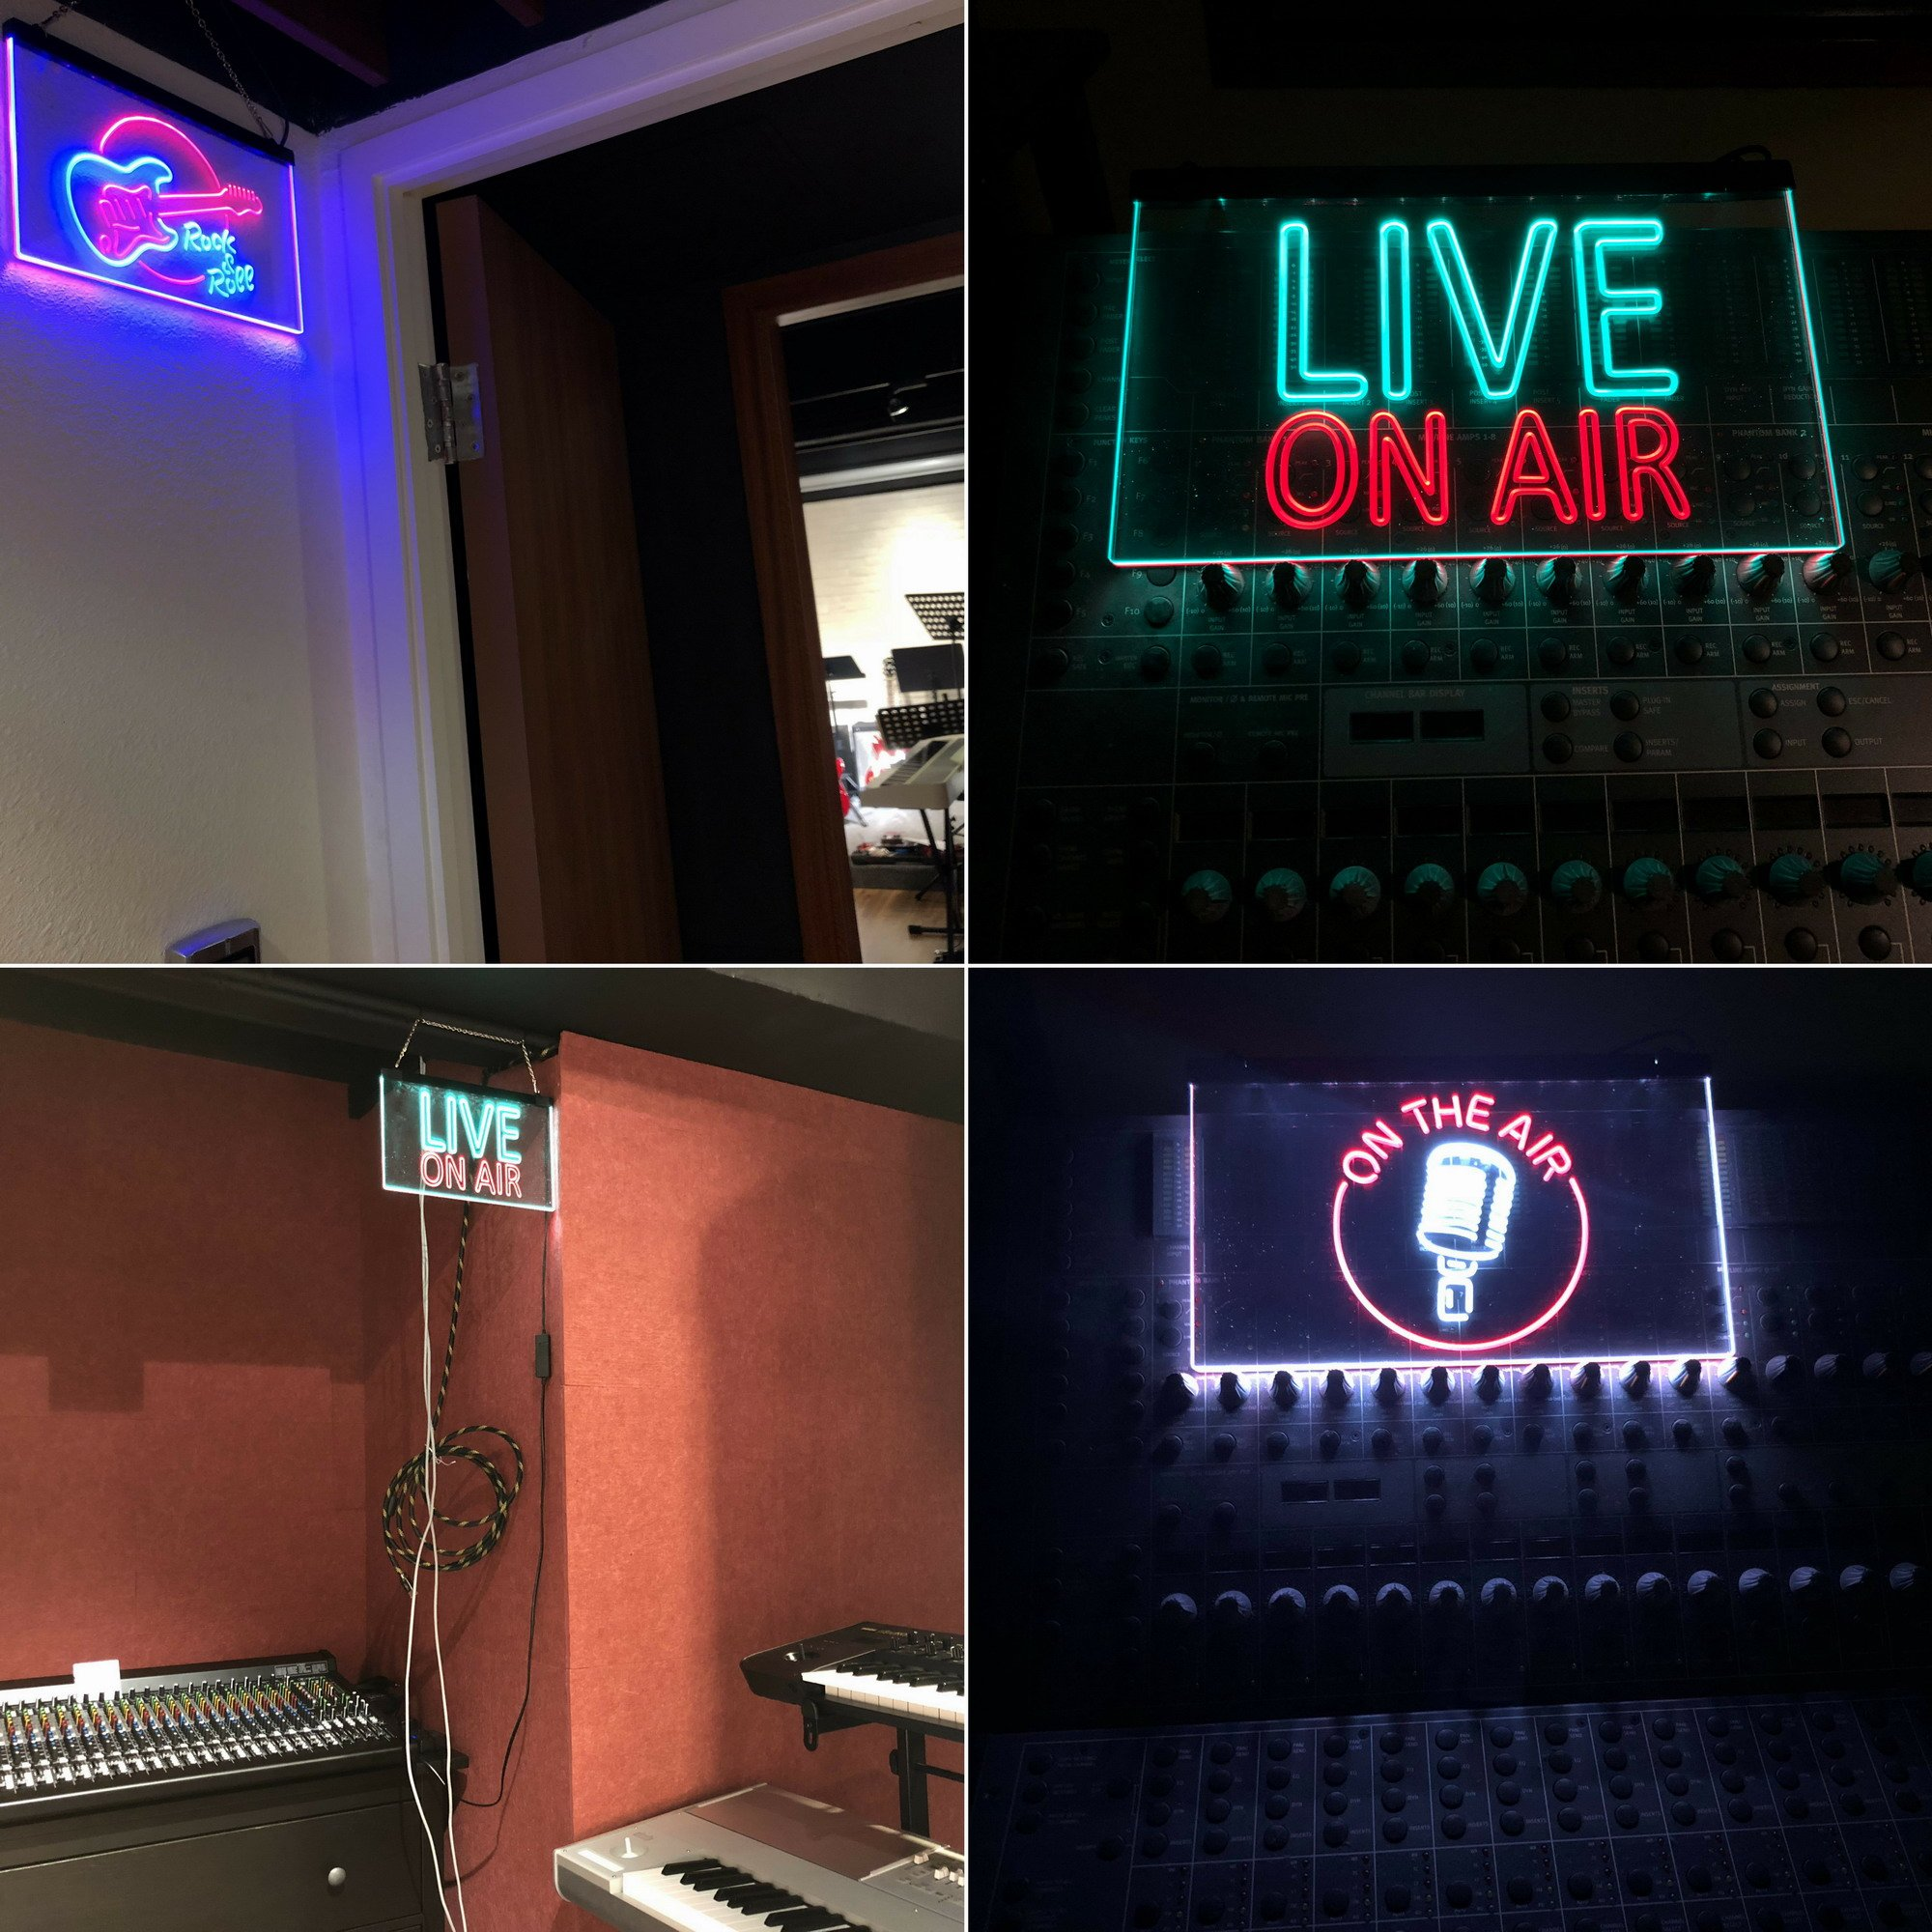 AdvpPro 2C On The Air Microphone Studio Recording Signal Dual Color LED Neon Sign White & Red 12'' x 8.5'' st6s32-m2028-wr by AdvpPro 2C (Image #6)